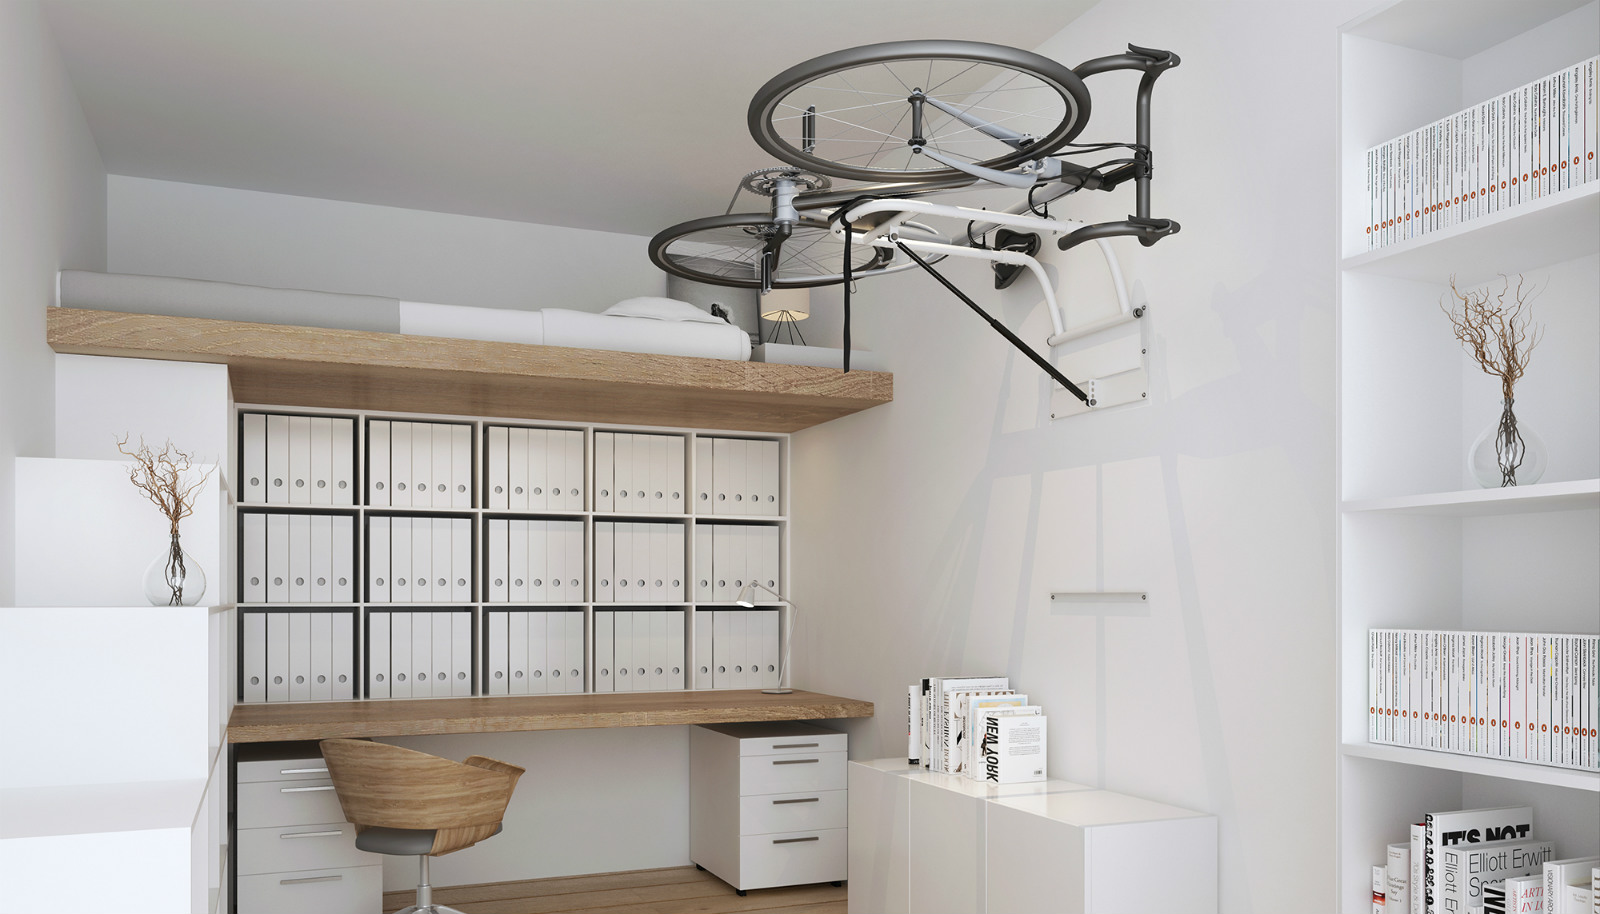 For Anyone Living In Cramped Quarters Or With Too Much Stuff (notably  Seasonal Gear), Zero Gravity Racks Offer A Solution. First, It Maximizes  Ceiling Space ...